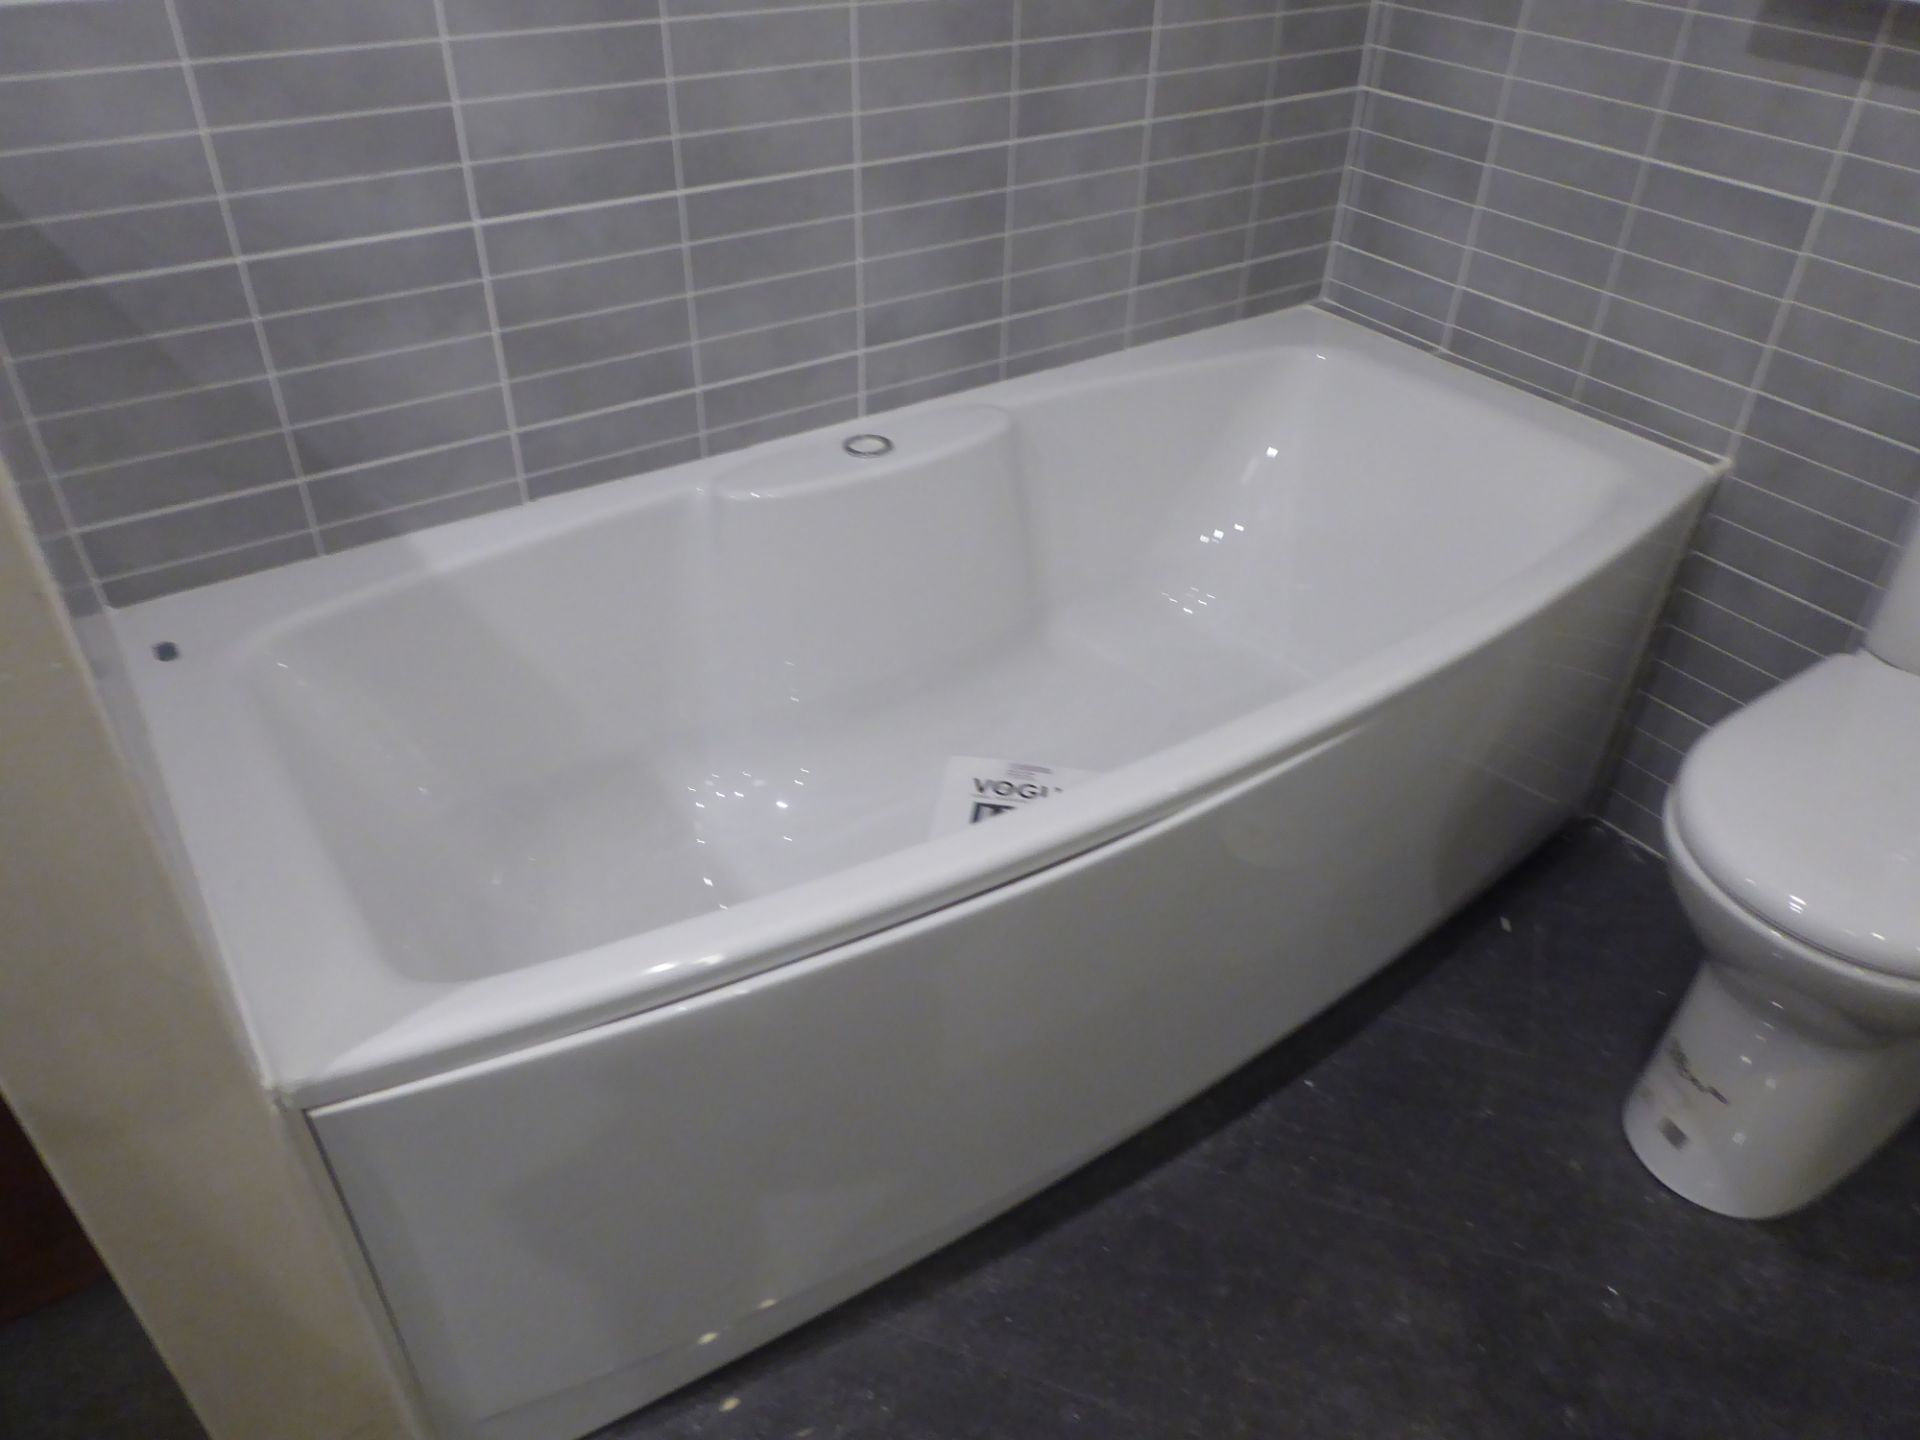 Lot 8 - Roca Senso bow fronted double ended bath, 1700mmx800mm max